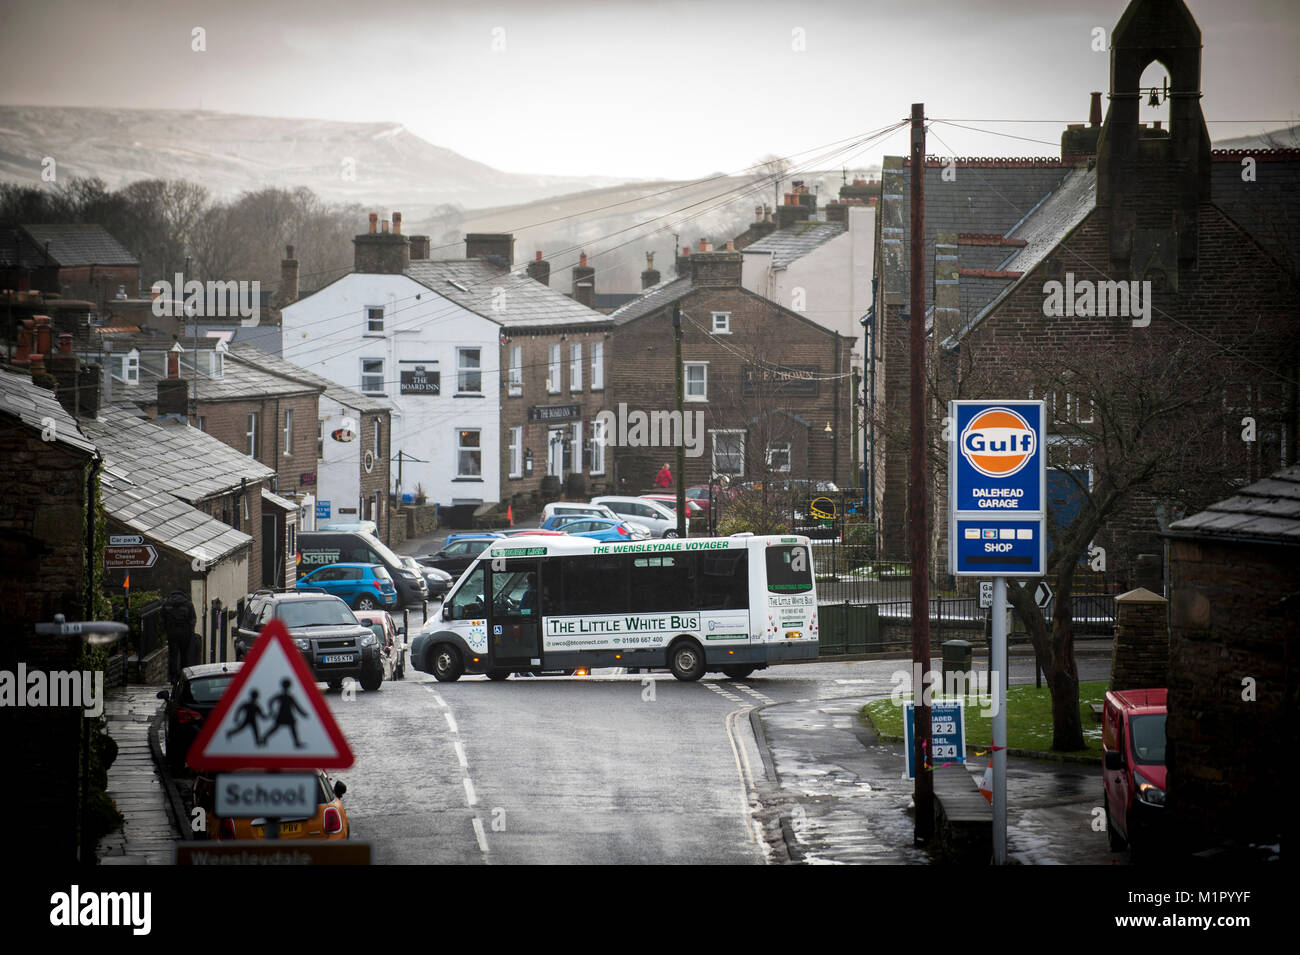 The Little White Bus turning into Looking into the Market Place at Hawes. Stock Photo